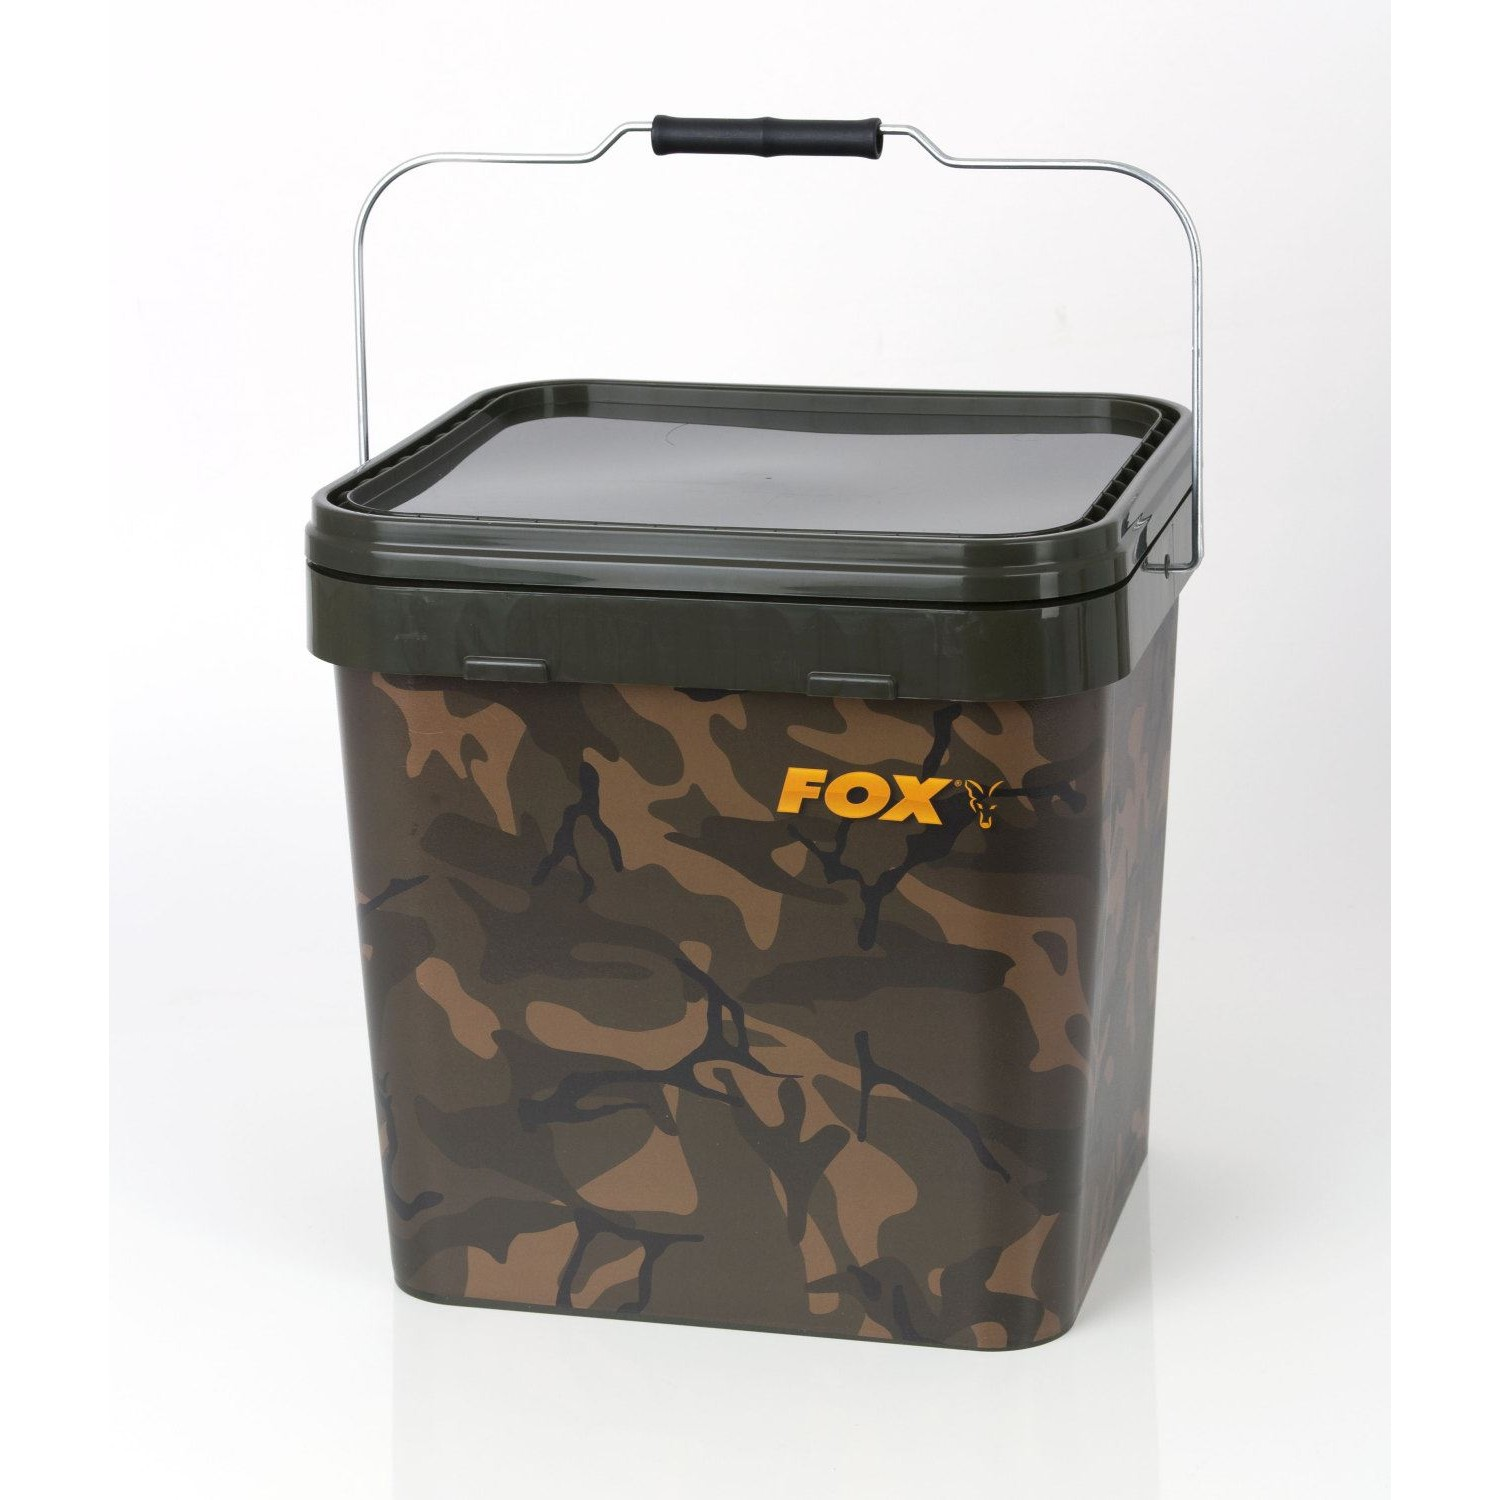 Fox Camo Square Buckets